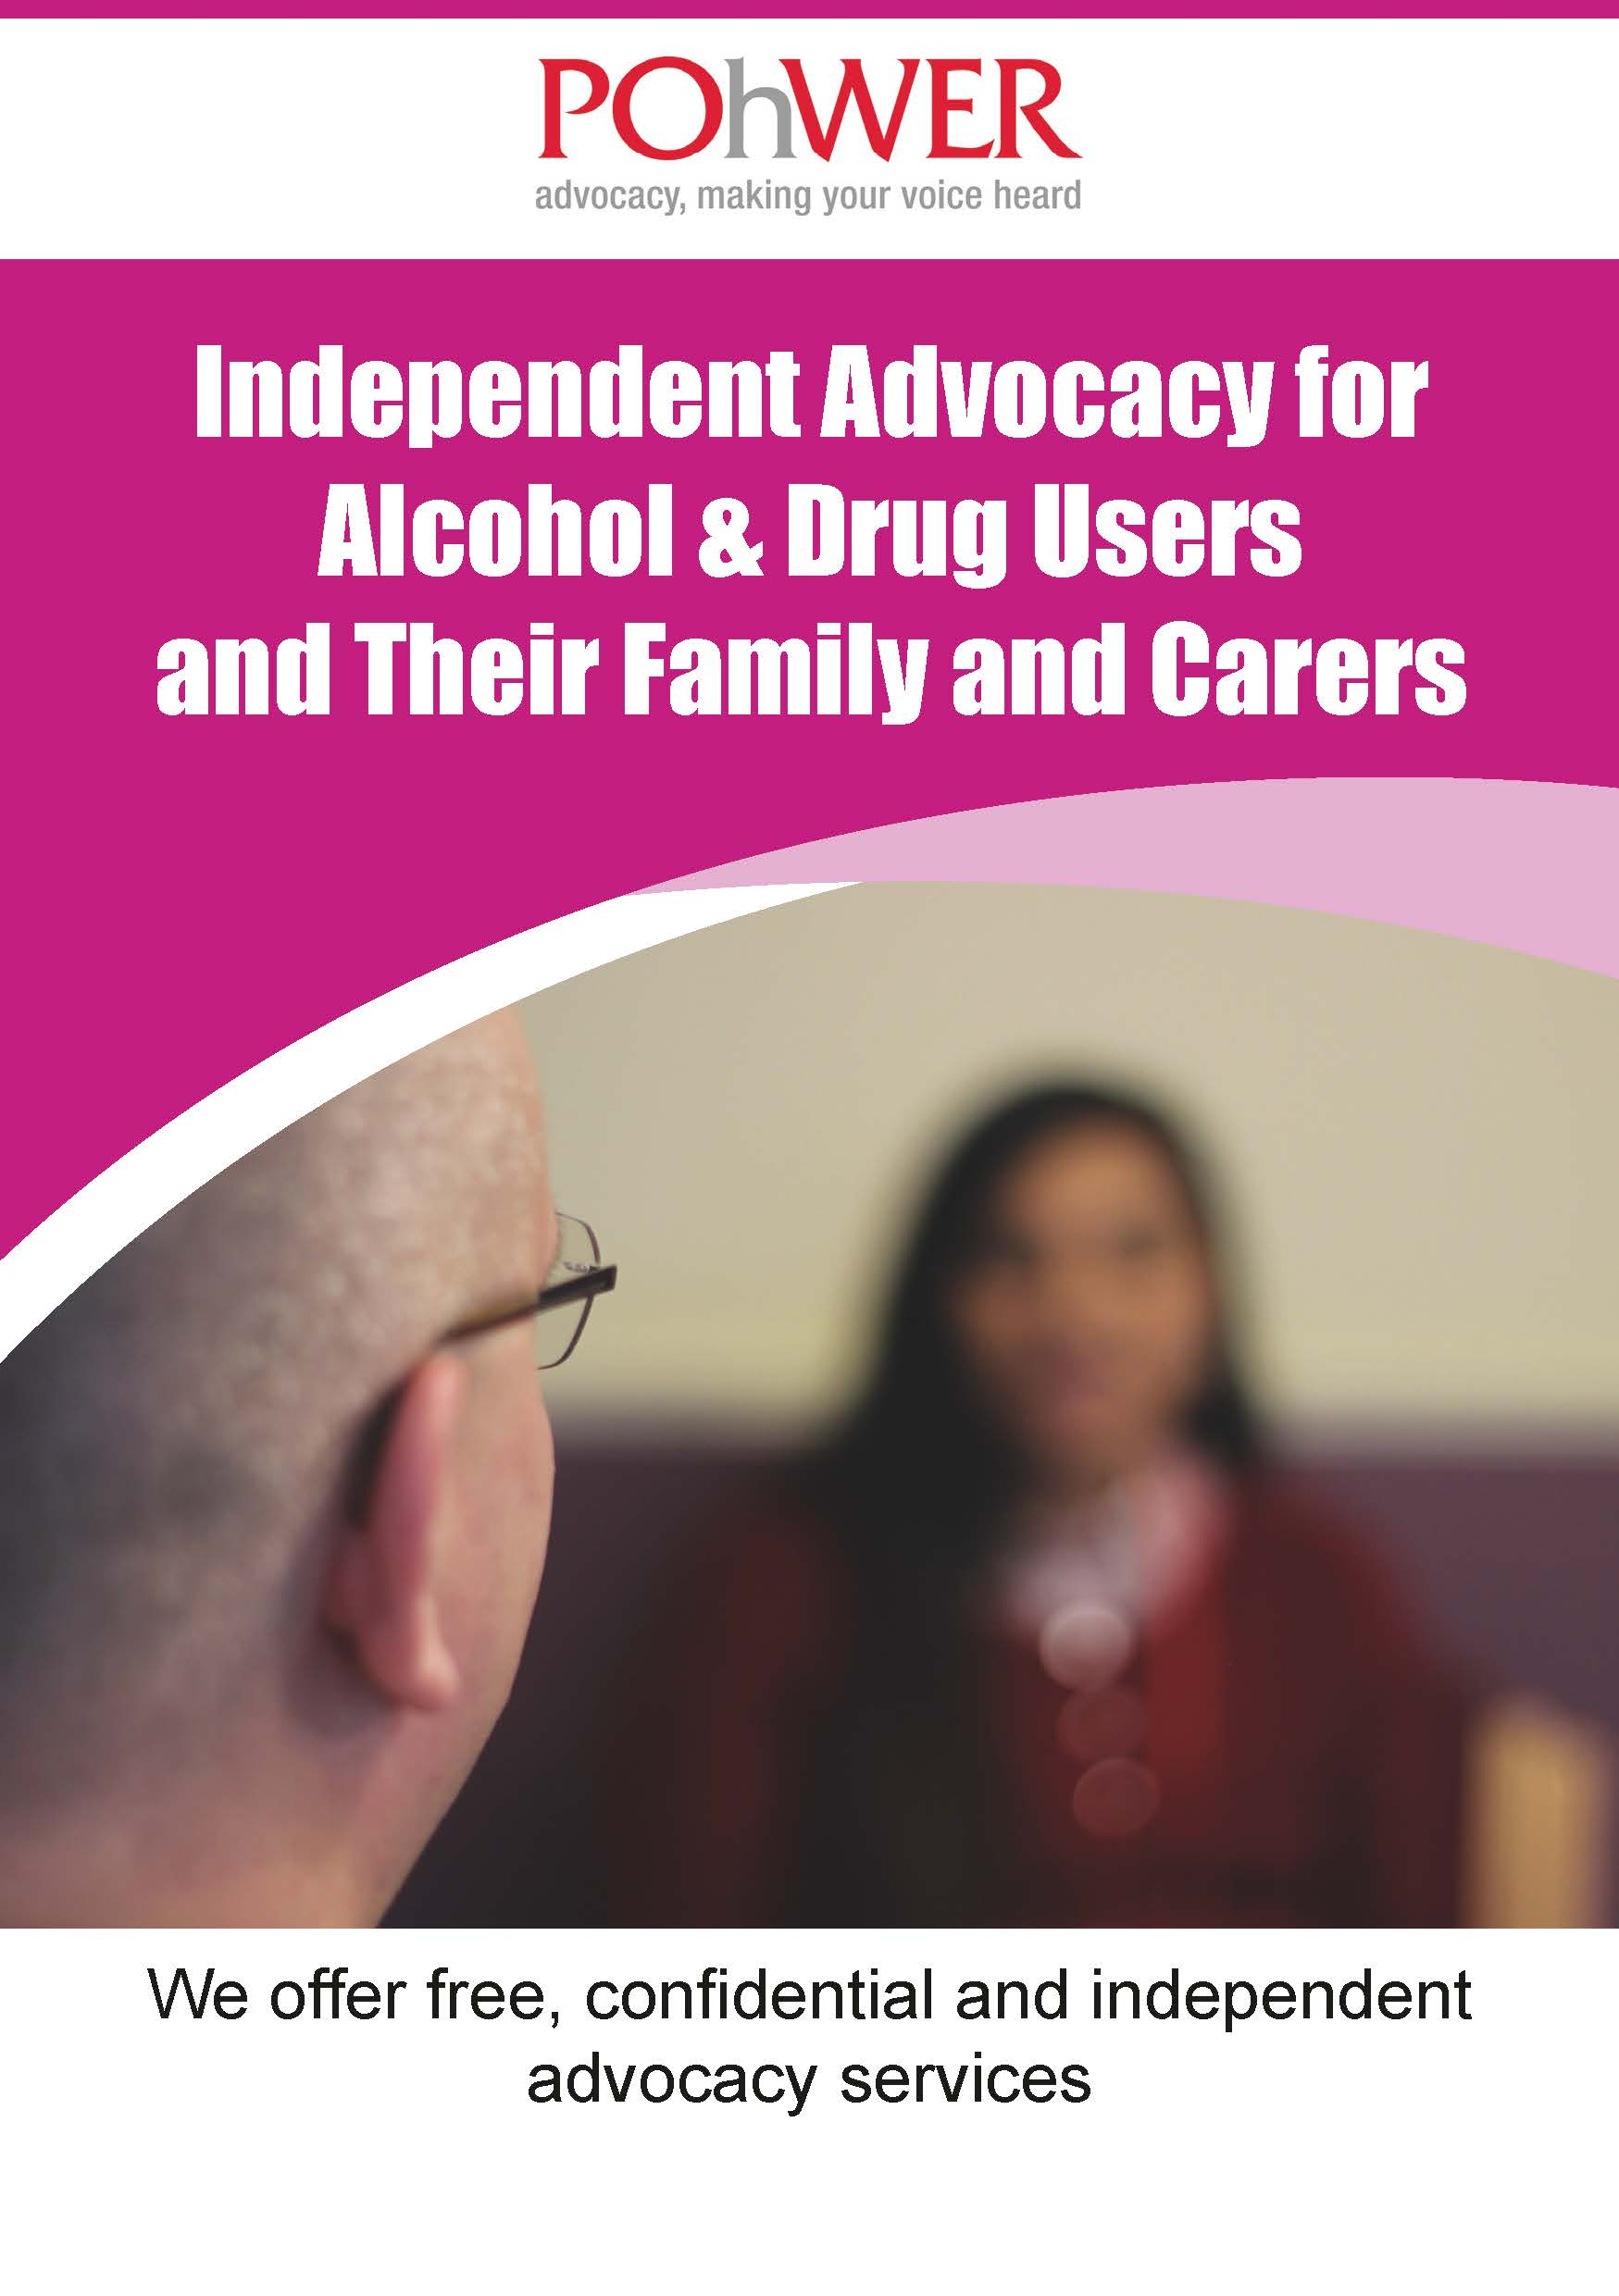 Independent Advocacy for Alcohol & Drug Users and Their Family and Carers leaflet cover